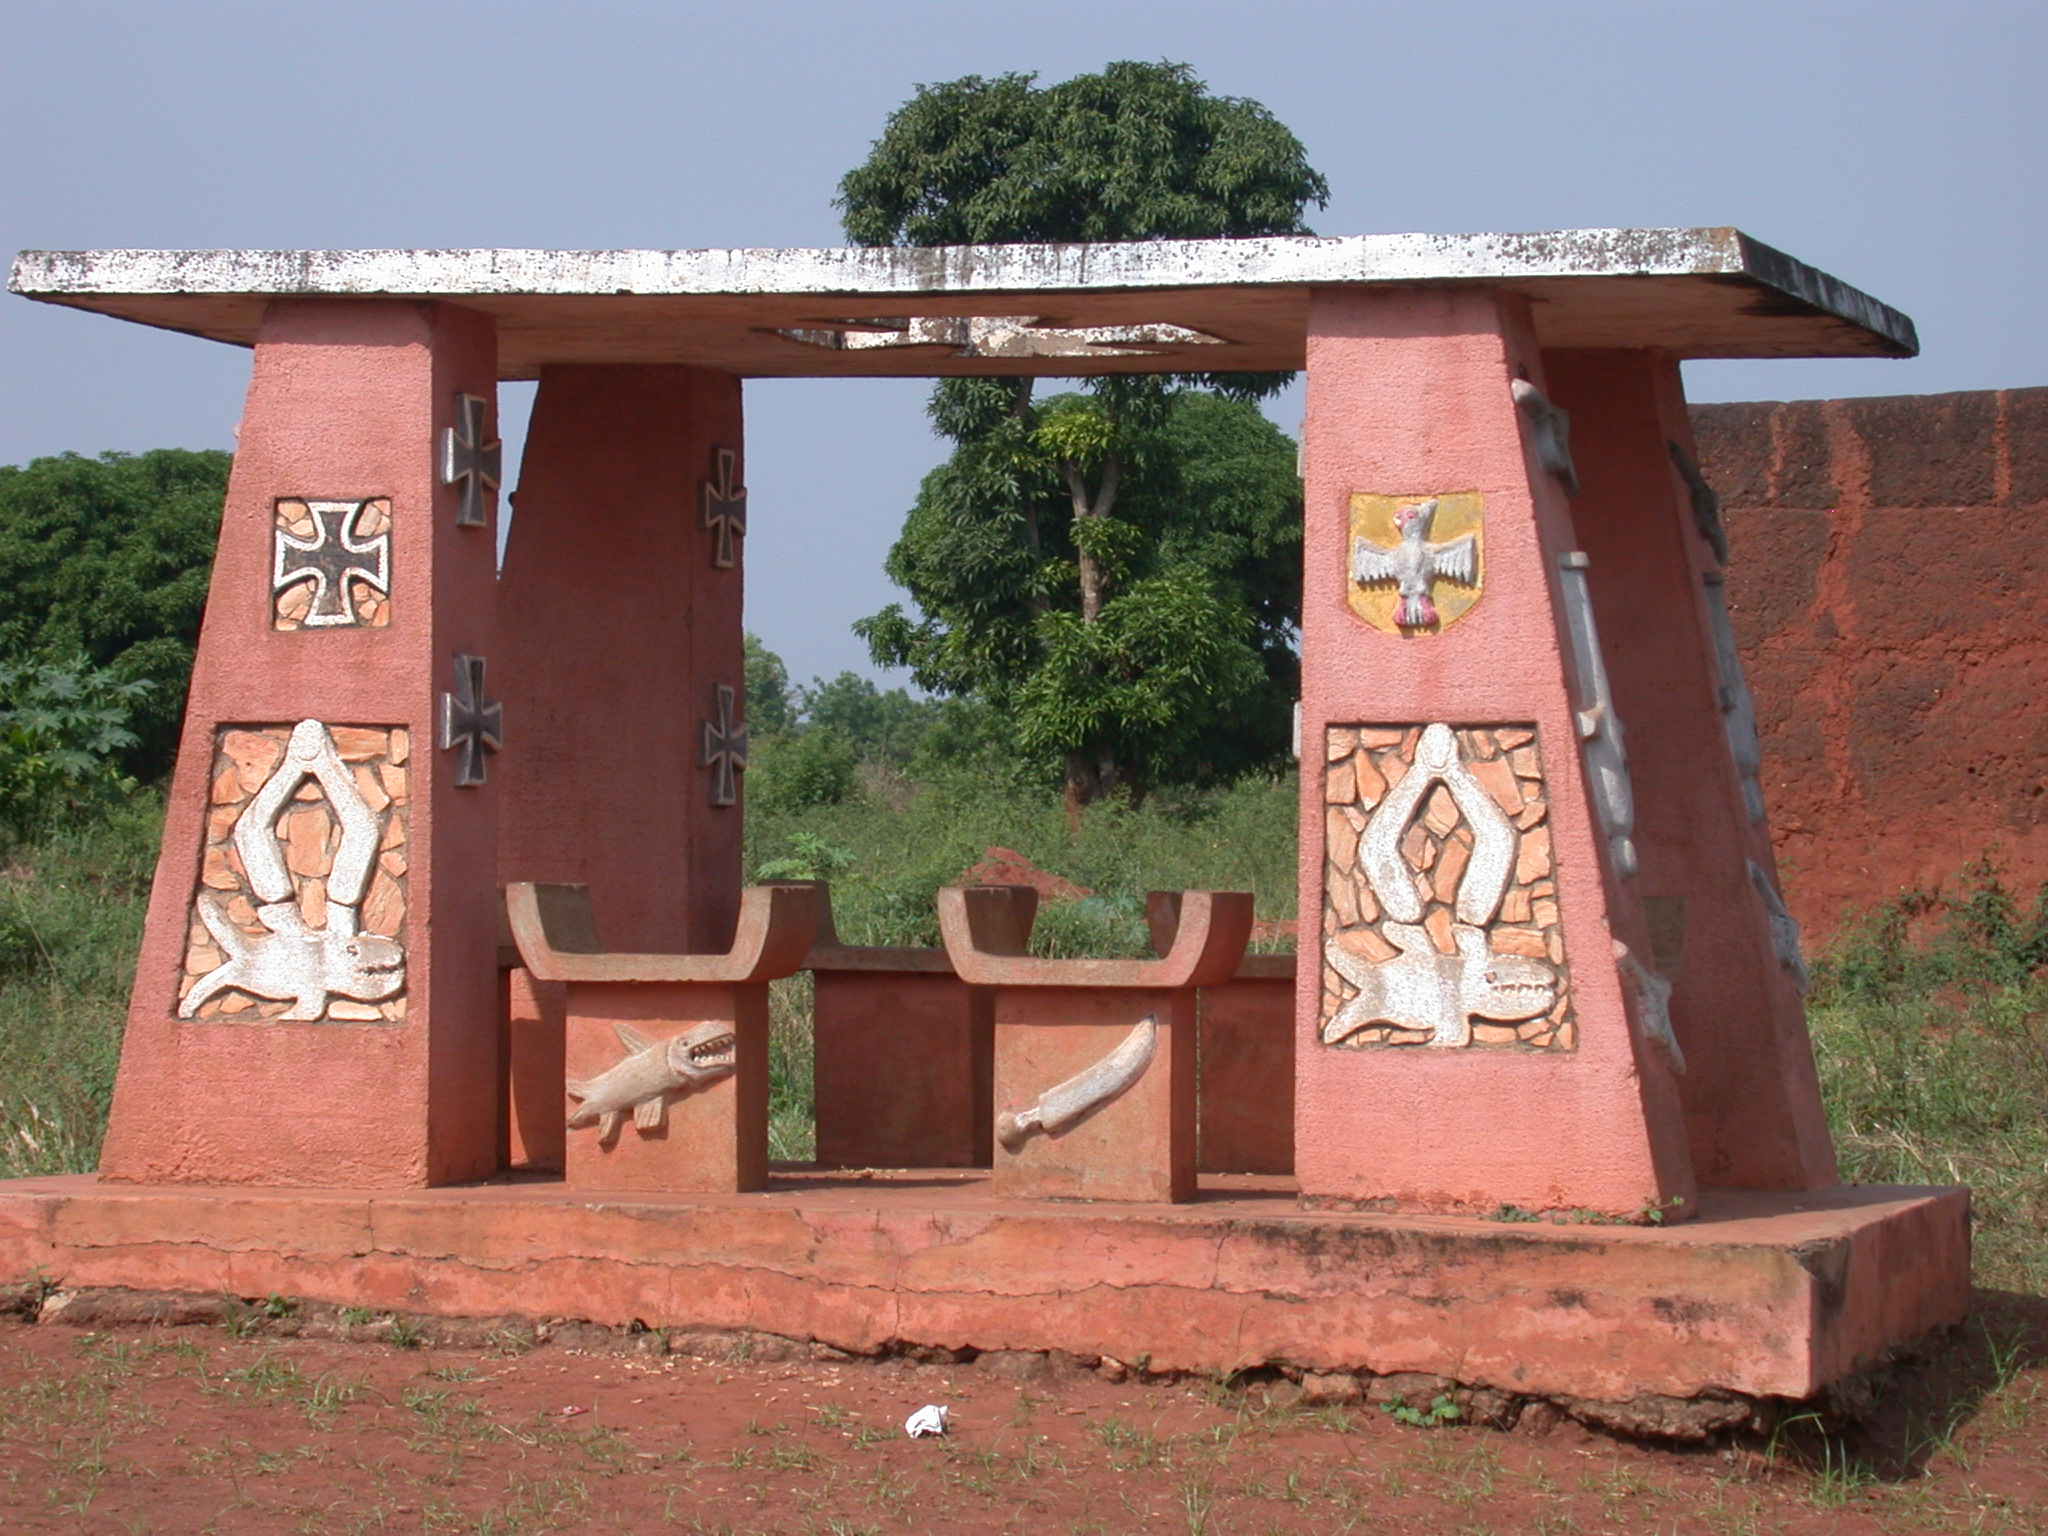 Monument to the Germans, Abomey, Benin